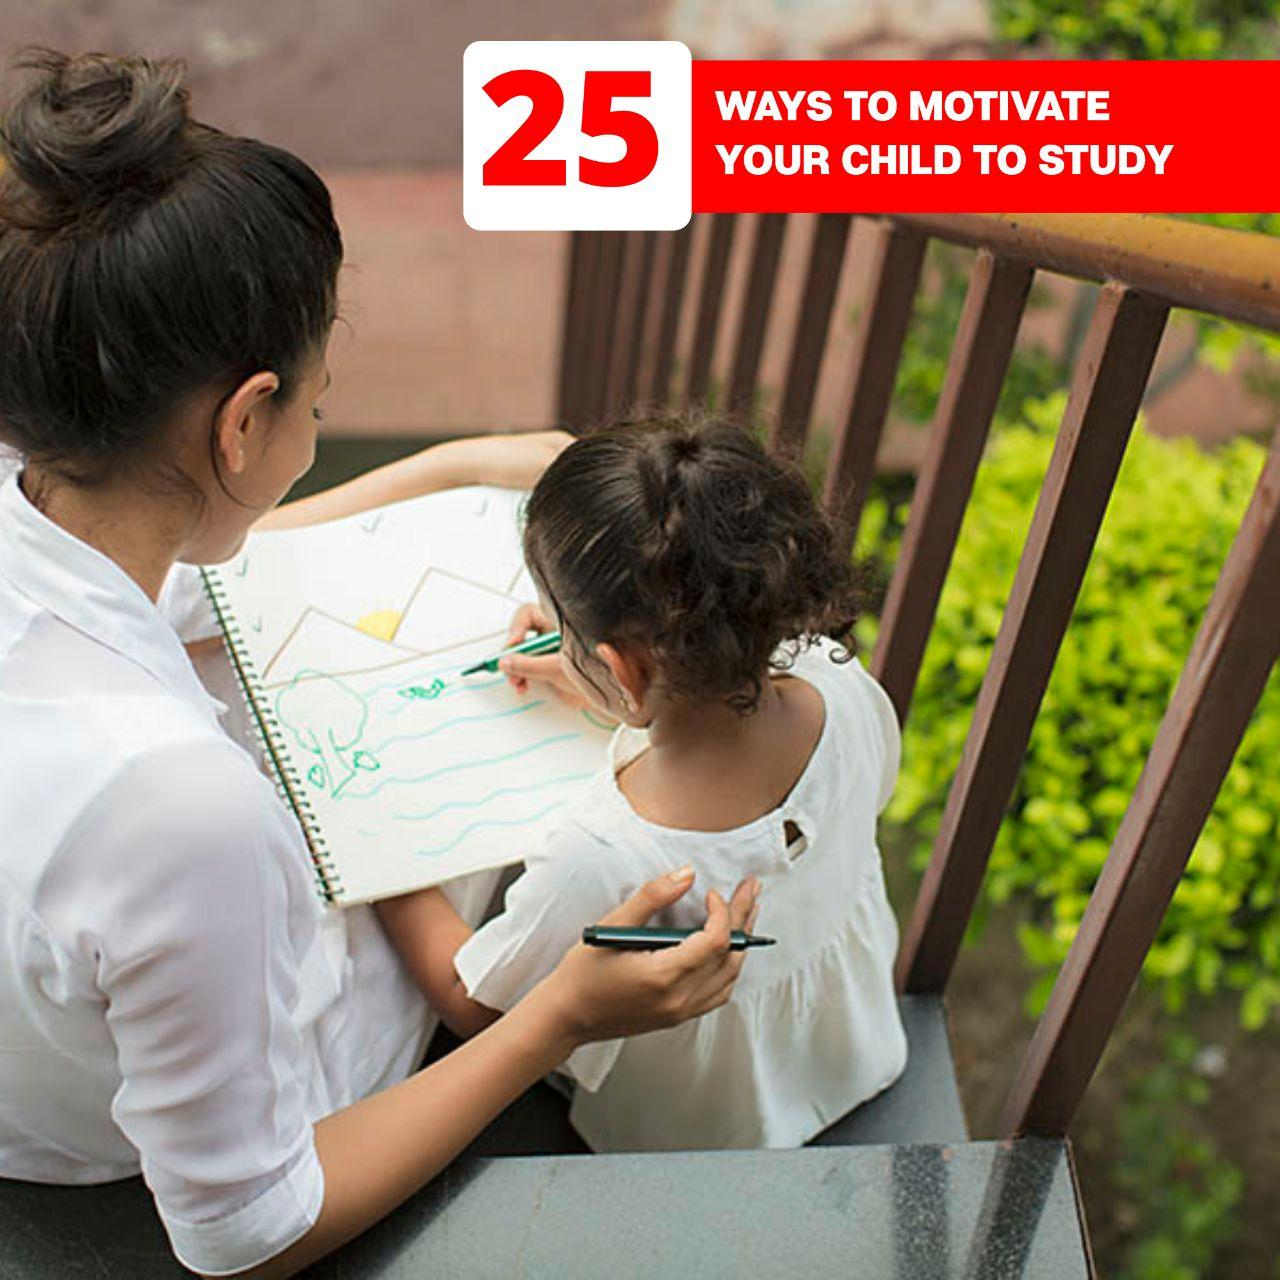 25 fun and easy ways to motivate your child to Study